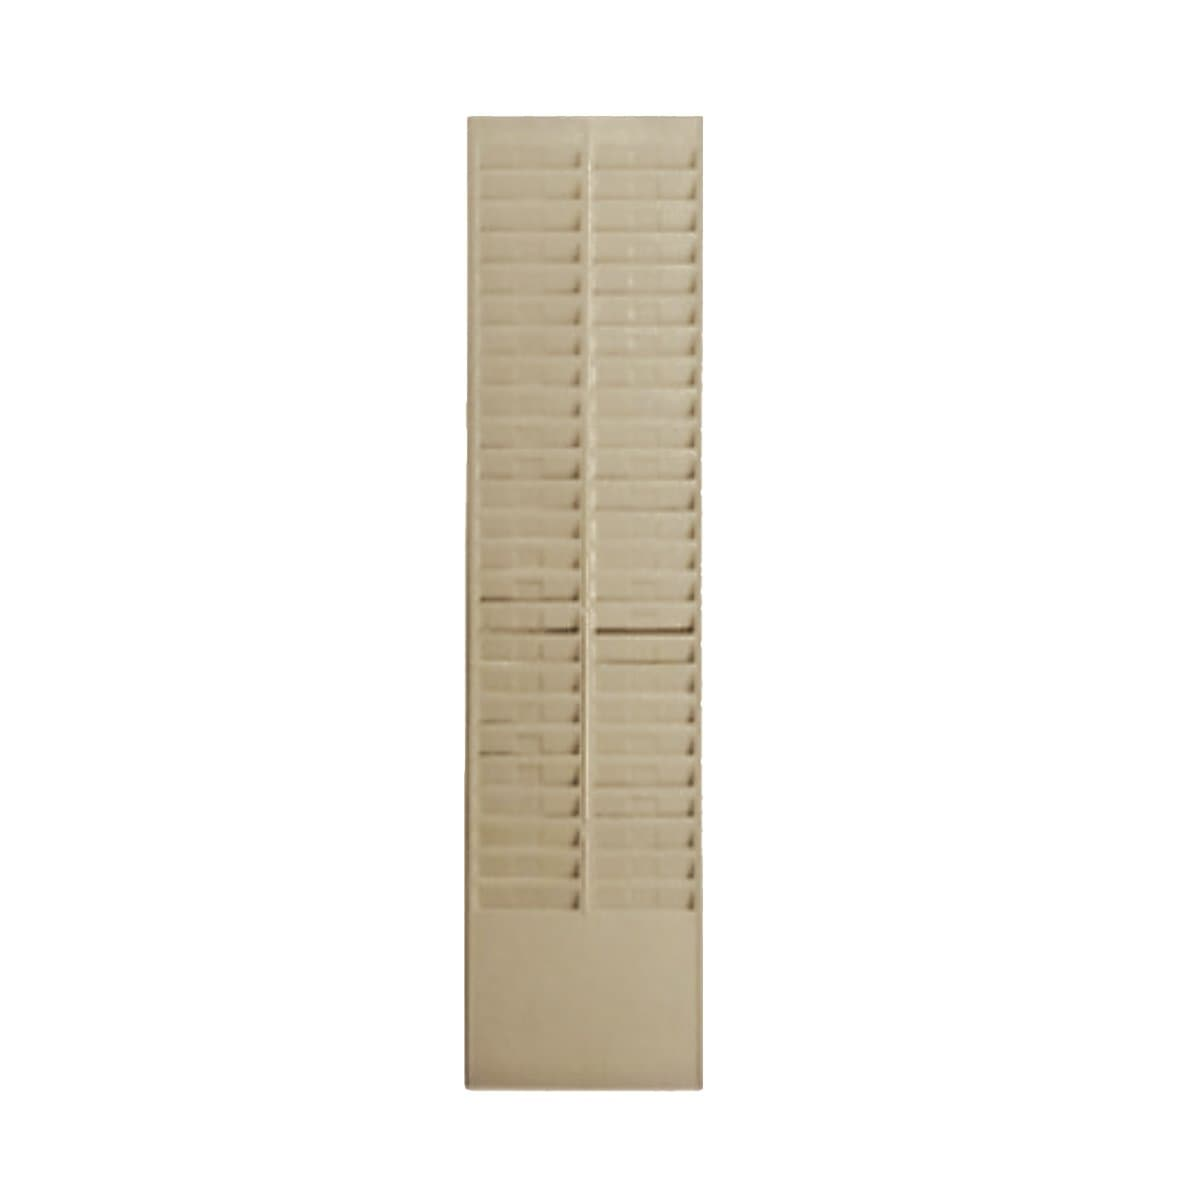 Time Card Rack CR-50, 50 Cards Capacity, Beige